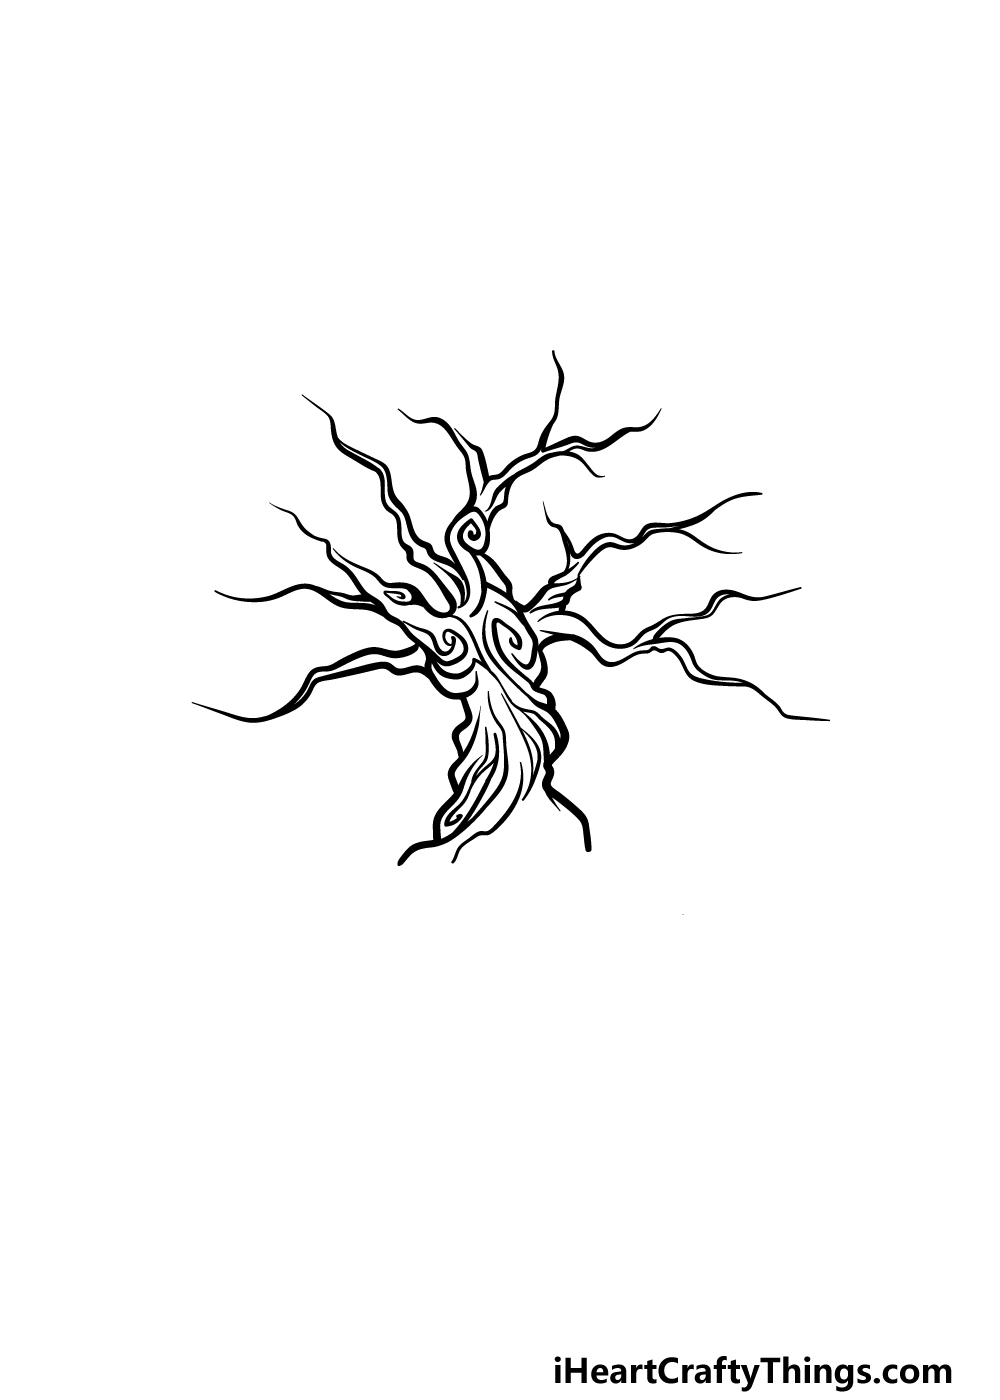 drawing the tree of life step 2